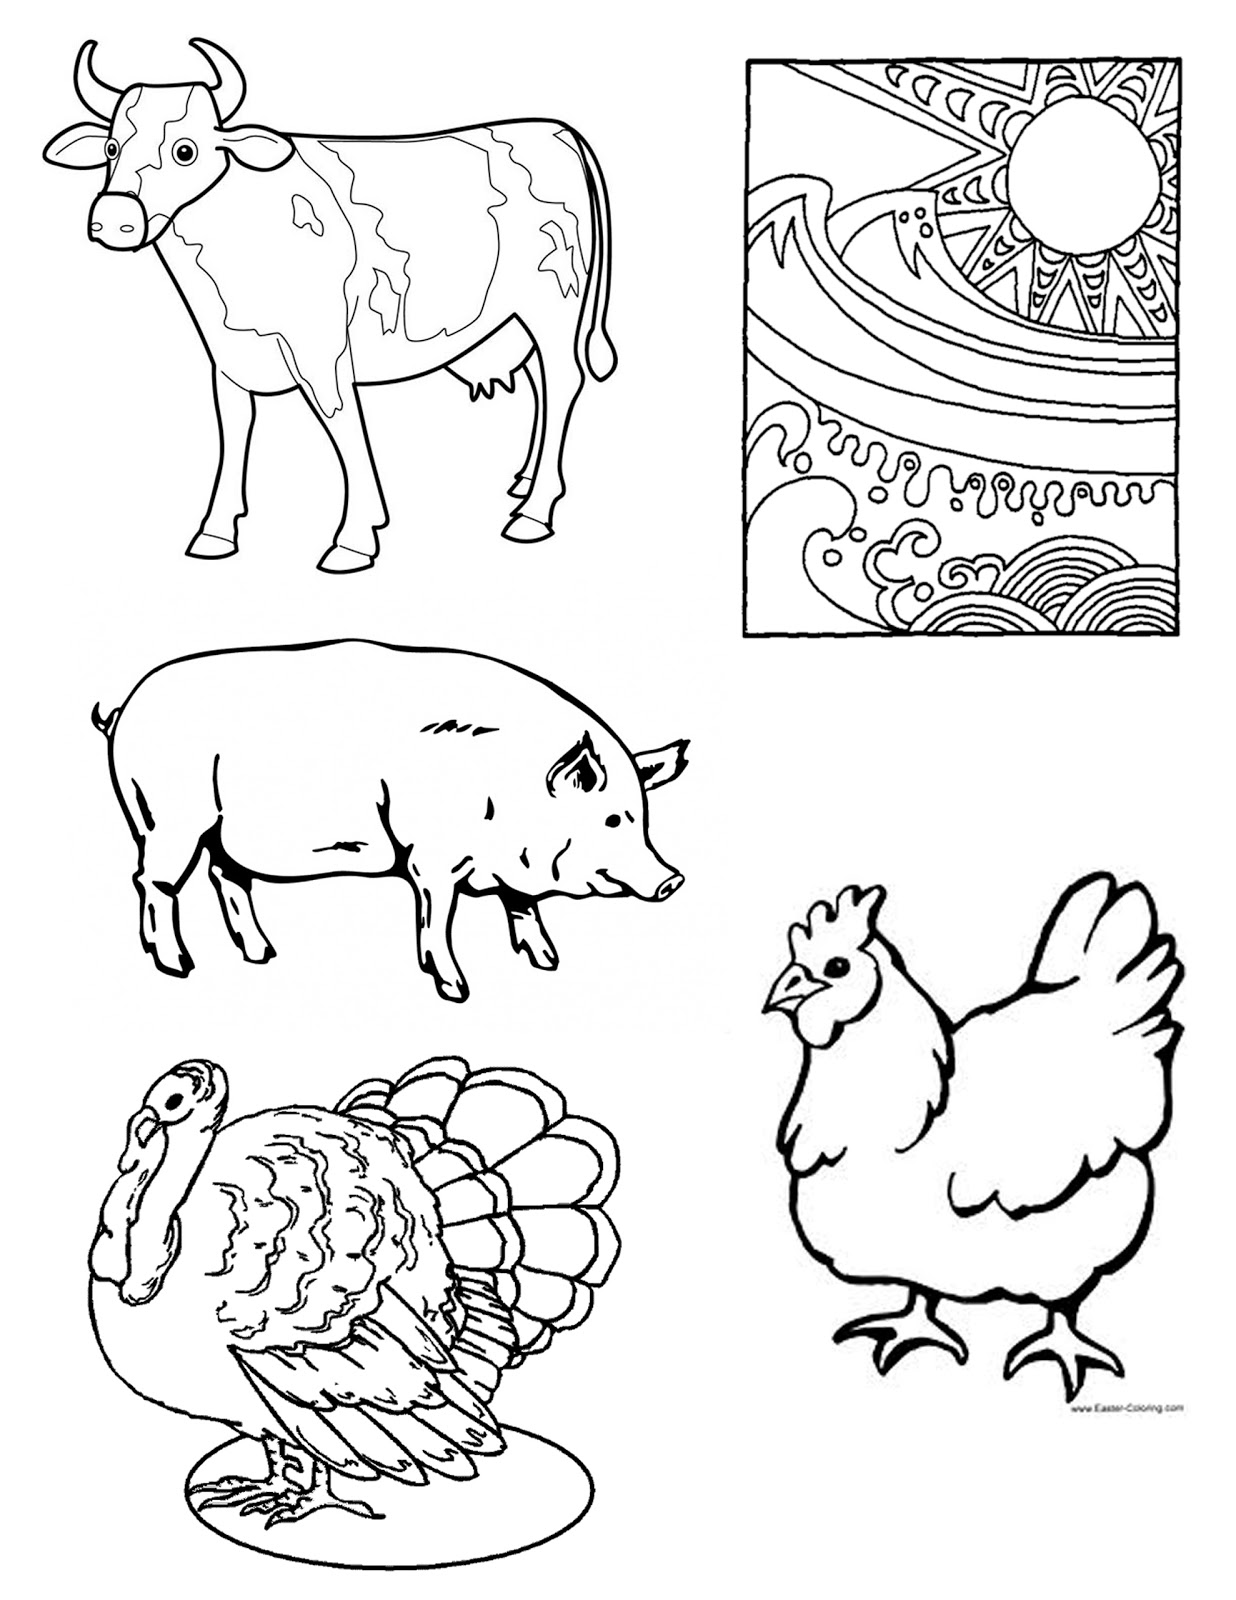 Meat Food Group Coloring Pages